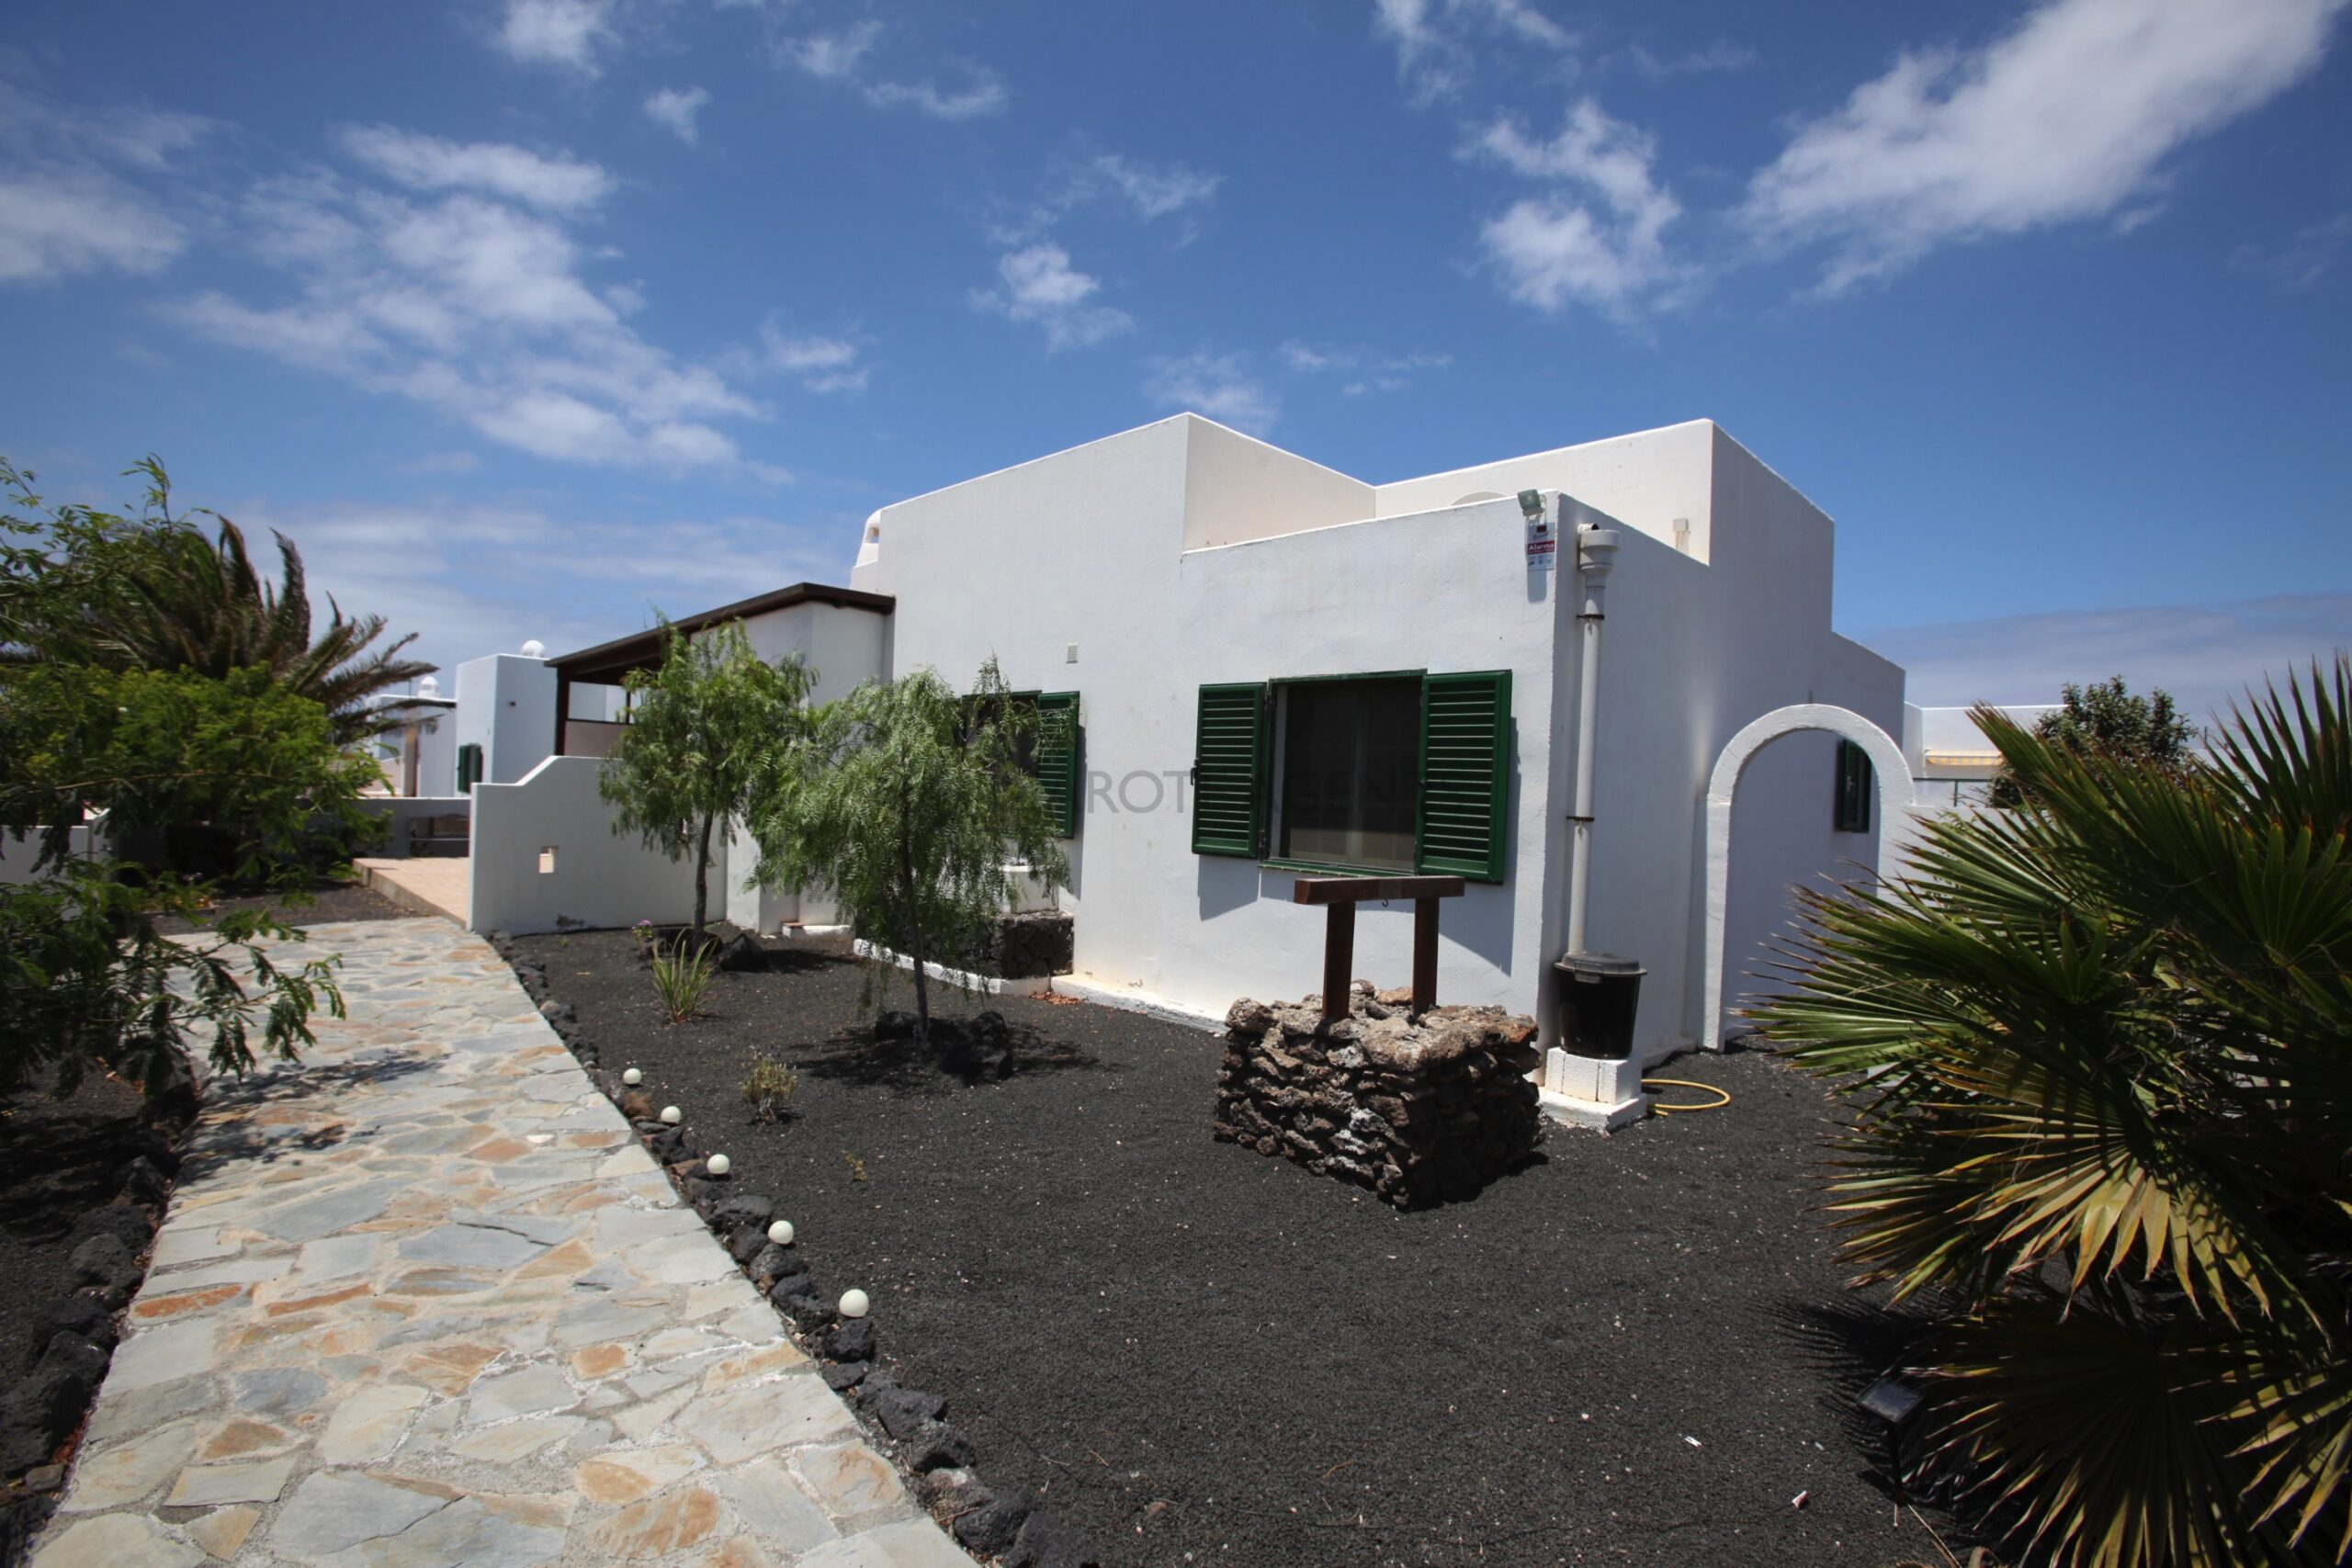 Detached 3 Bedroom Villa on a Spacious Corner Plot,  Mature Gardens and Communal Pool